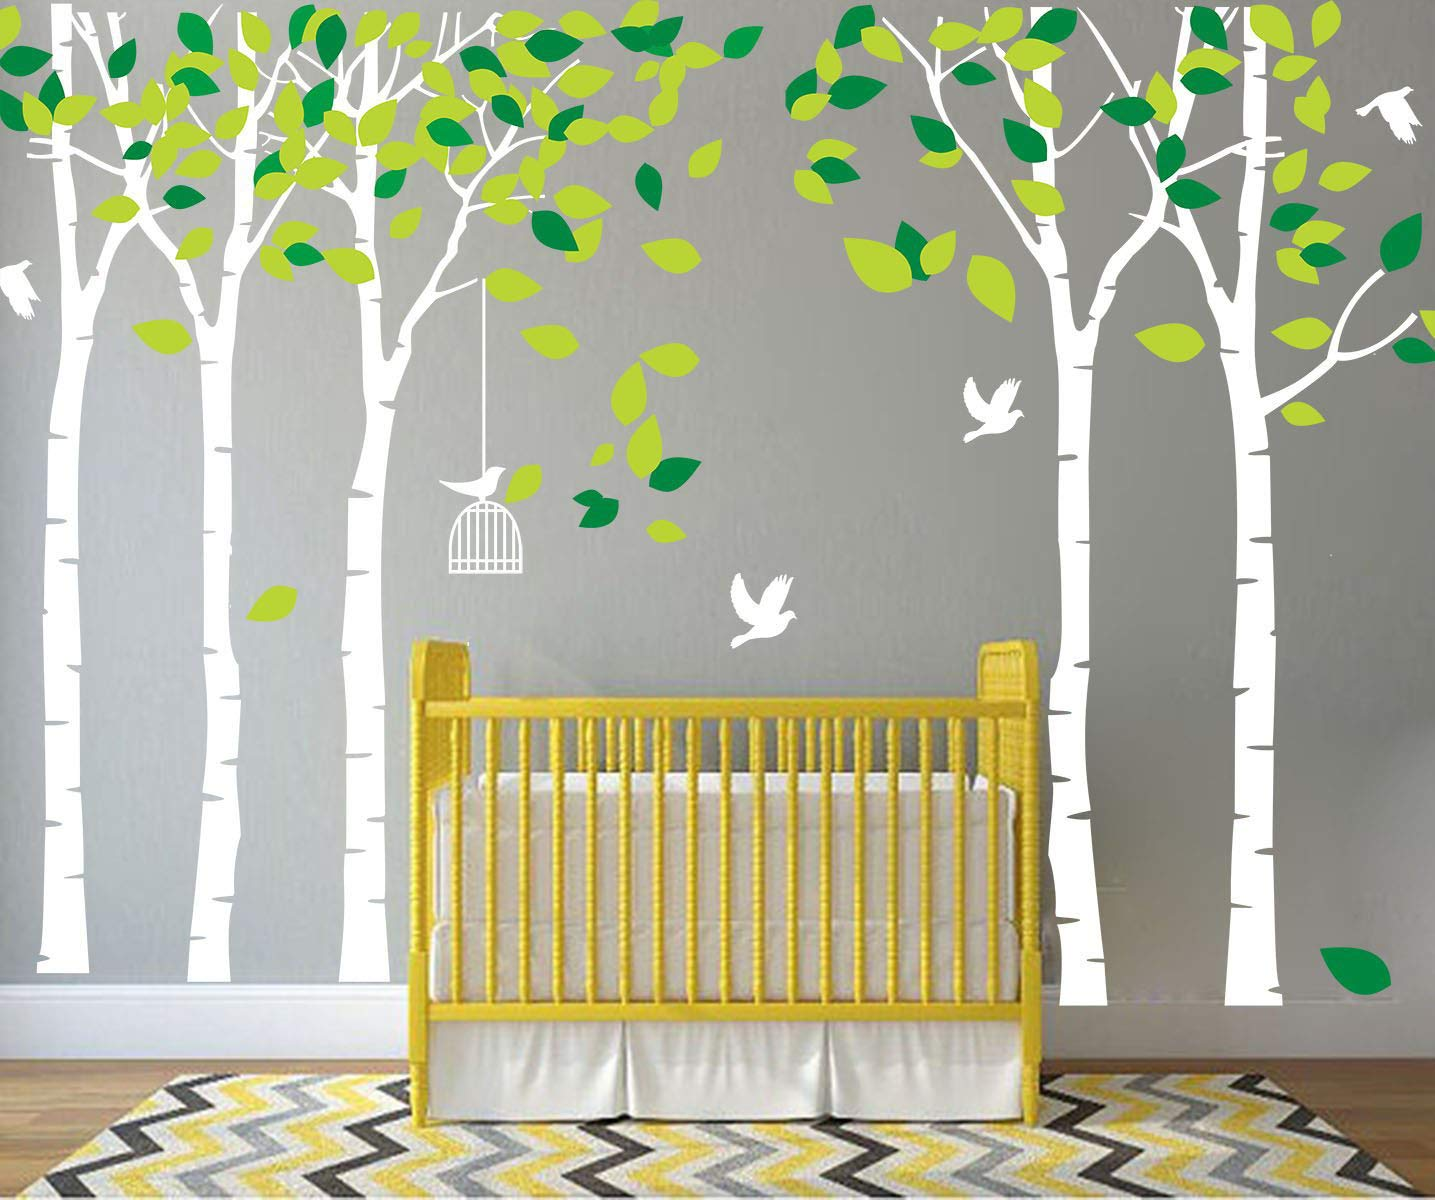 LUCKKYY Large Five Tree Wall Decal Tree Wall Sticker Removable Vinyl Mural Art Wall Stickers Kids Room Nursery Bedroom Living Room Decoration (White+Green) by LUCKKYY